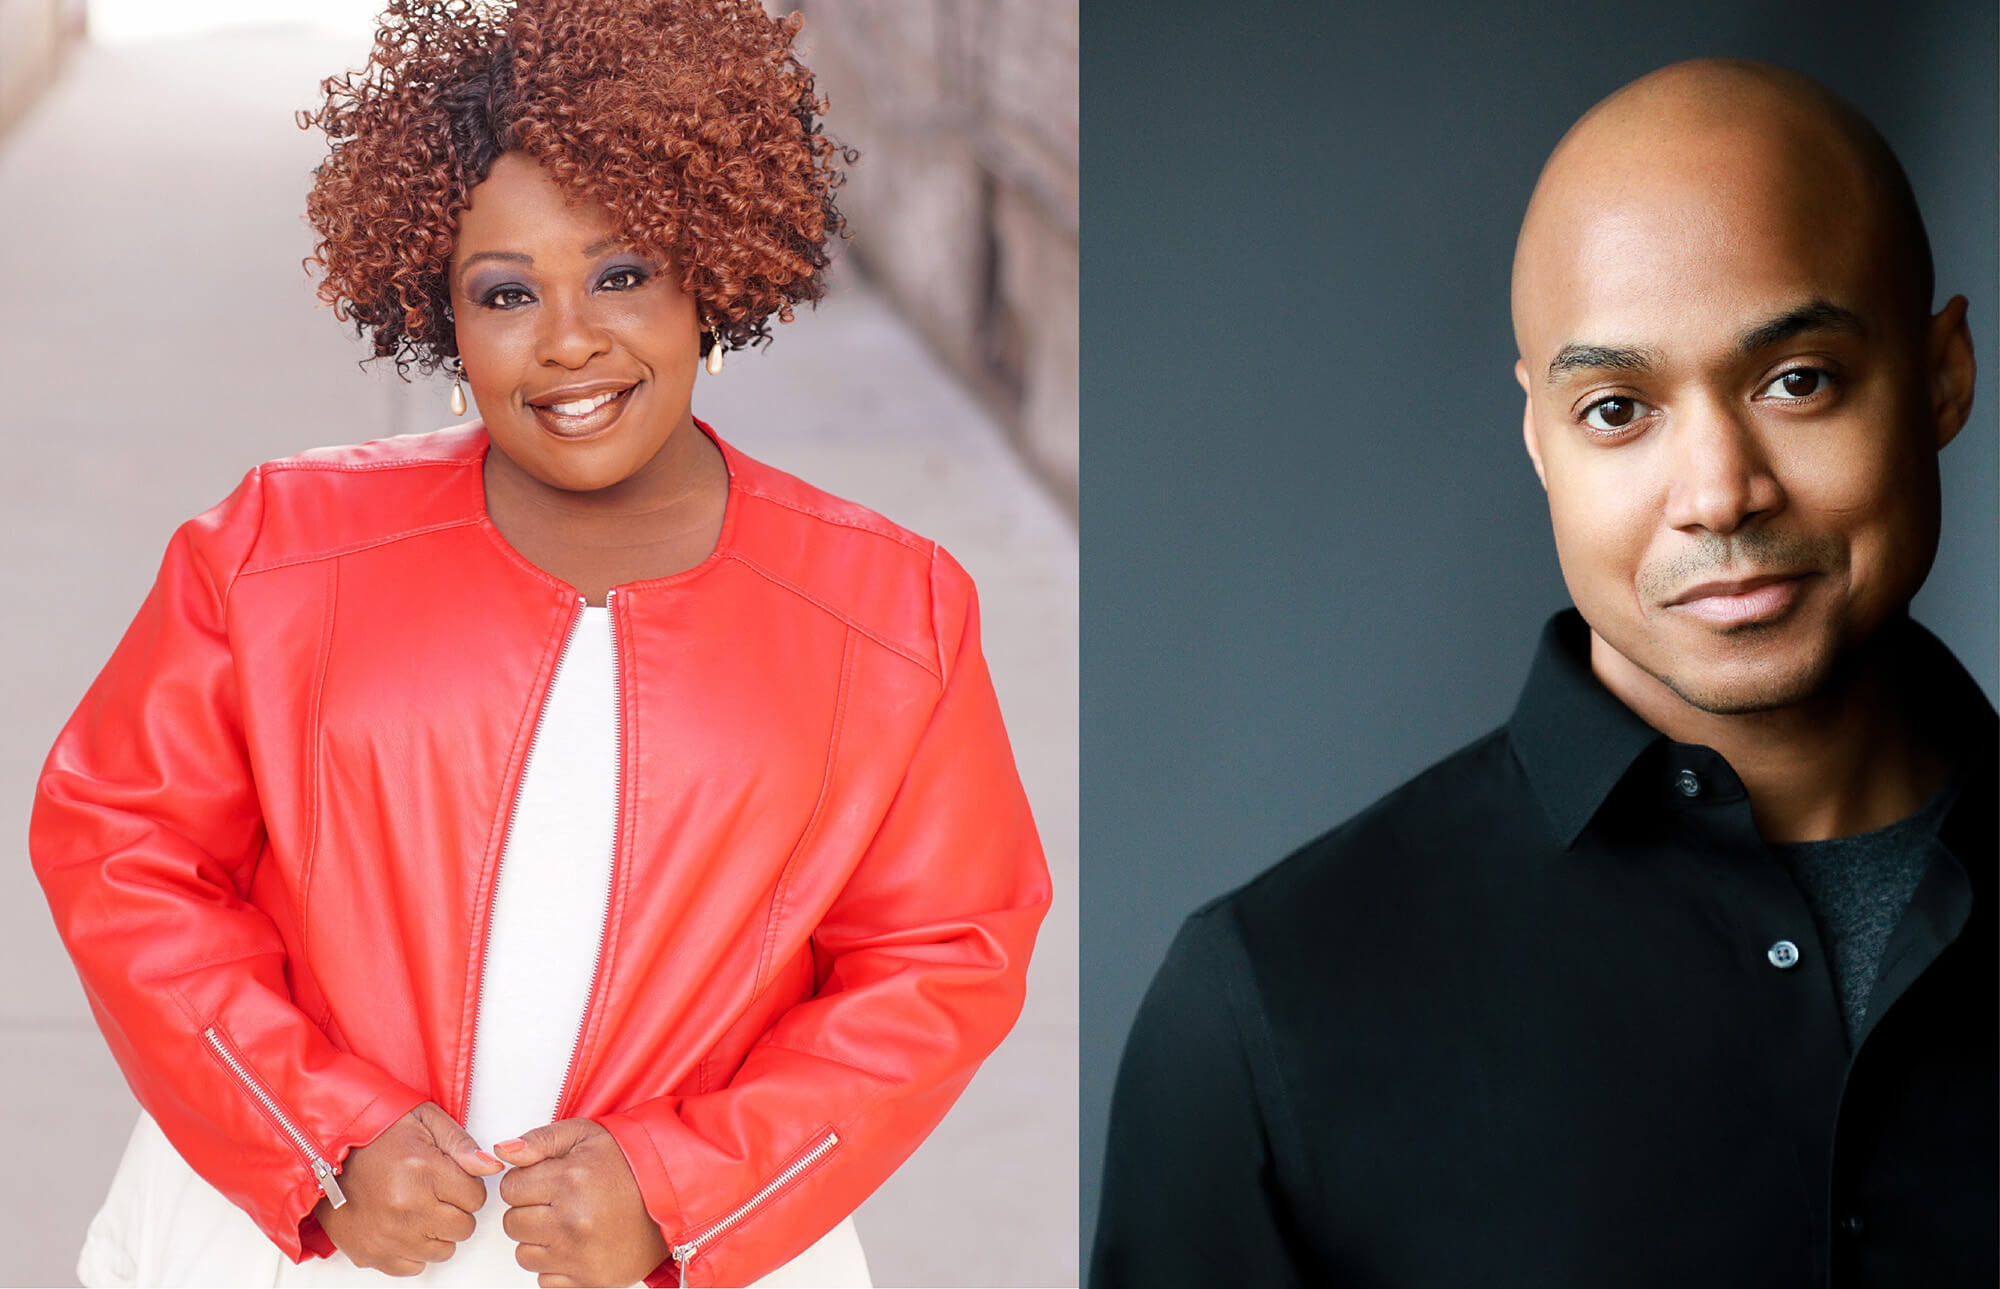 (L-R) Yvette Monique Clark and Curtis Wiley, Jr. take the stage for the Depot Theatre's production of THE MOUNTAINTOP beginning July 1.